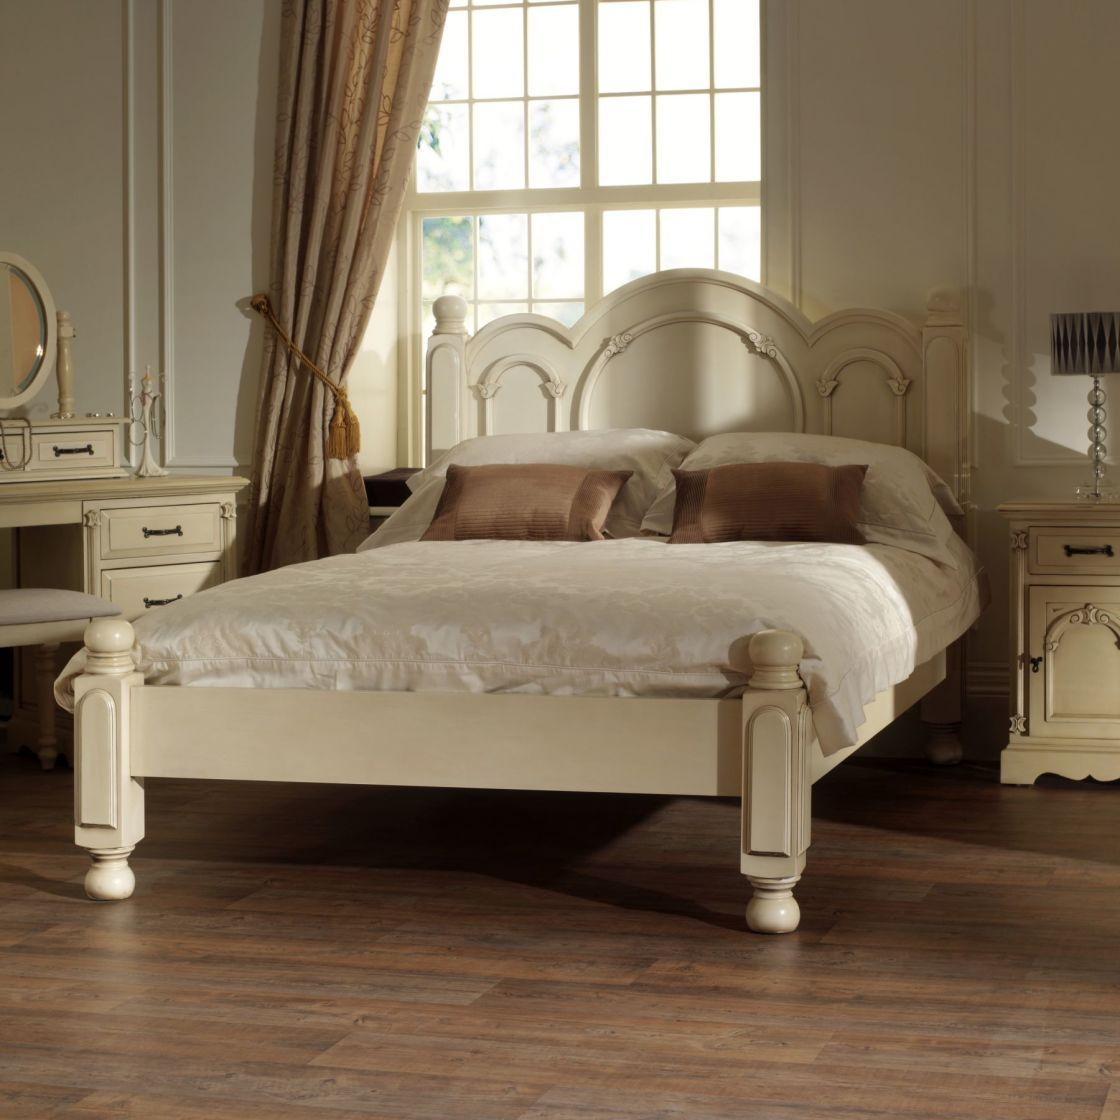 French Style Bedroom Furniture Ideas With The Look Antique Ivory ...